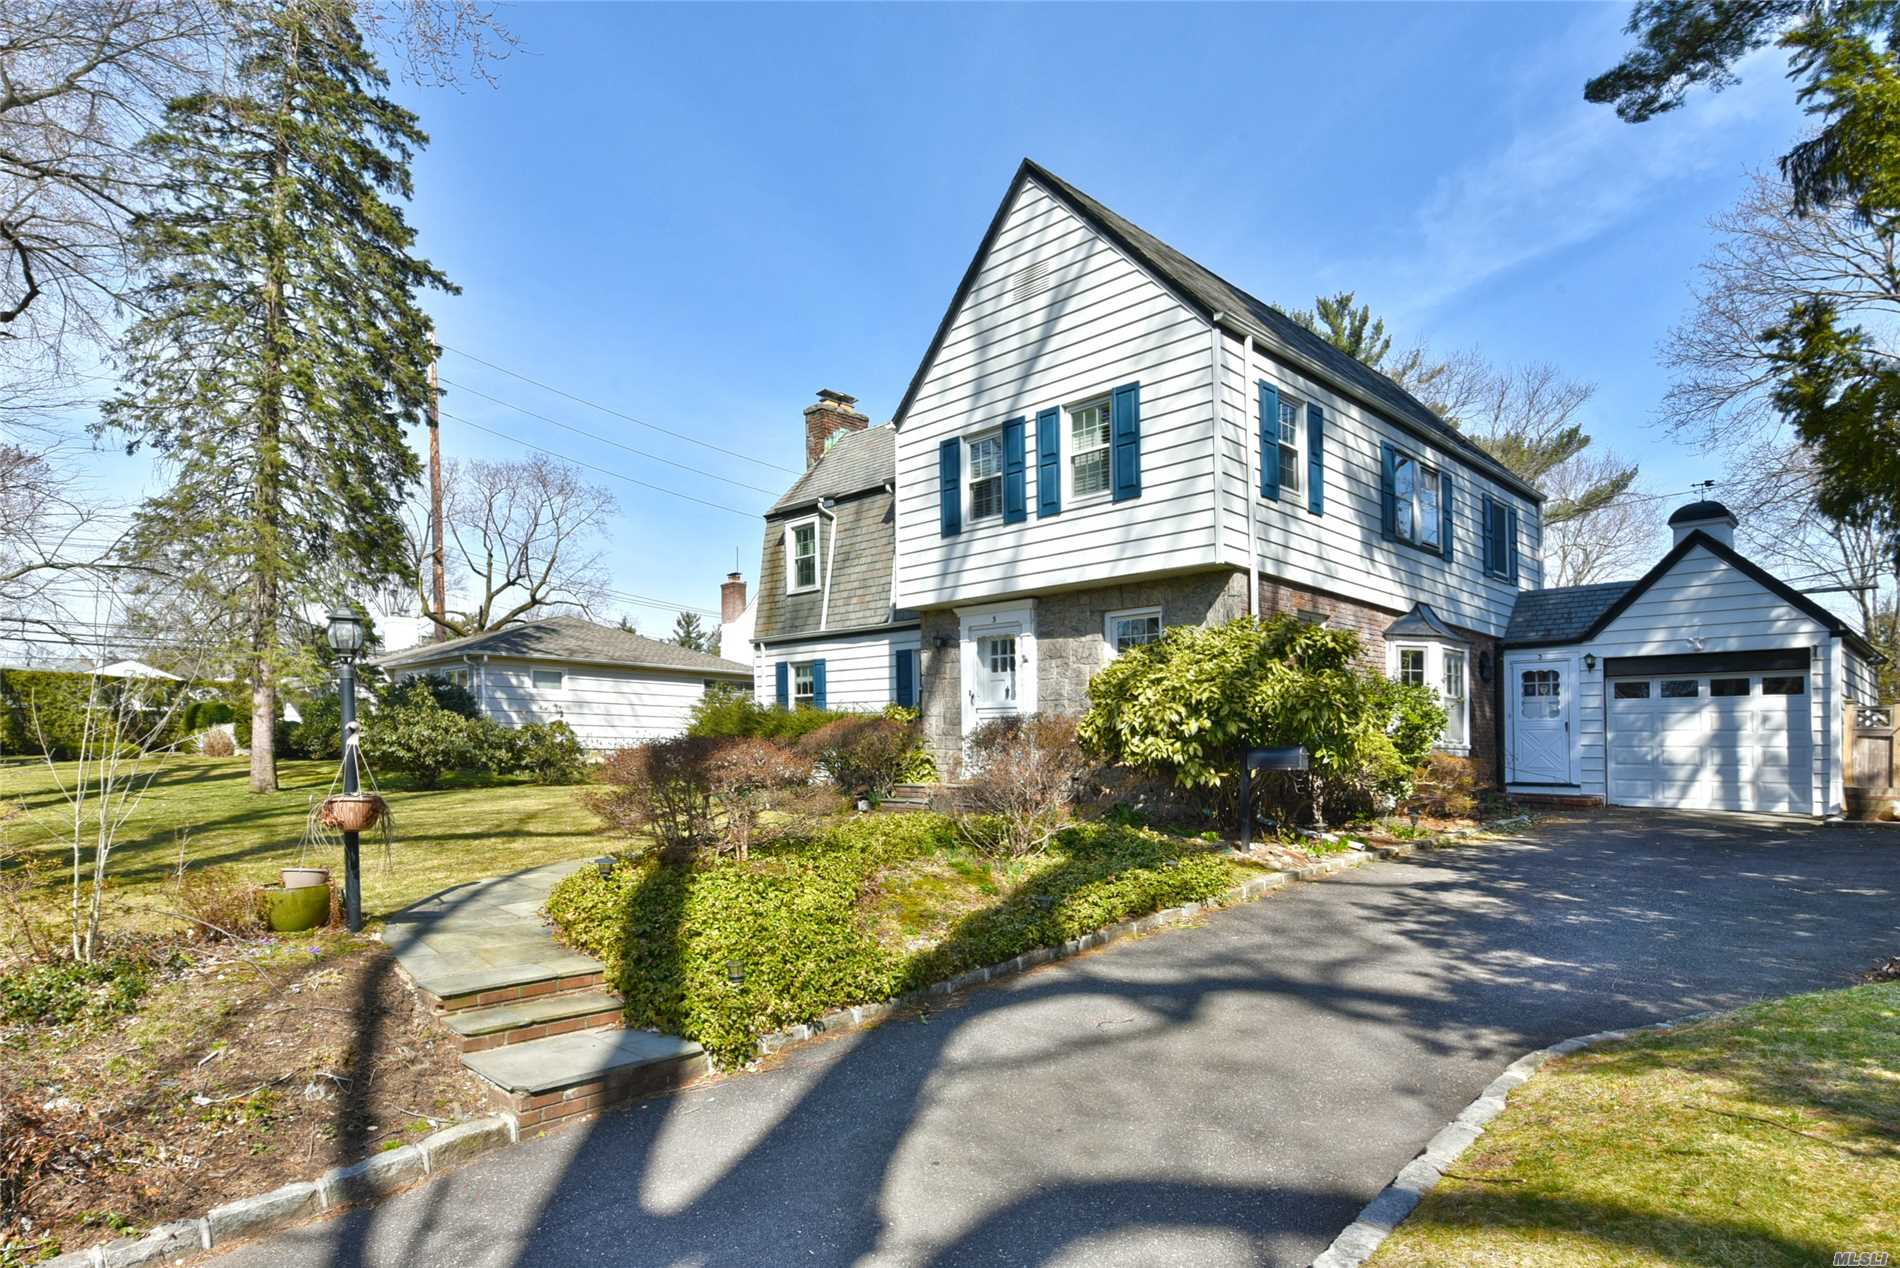 Revamped, reinvented & ready to sell. Spring has sprung! Magic is in the air as you enter into this glamorous picture perfect stone and shingle colonial. Unbelievable opportunity with an express commute to Manhattan on the sought after Port Washington line. Boasting sun filled rooms and charm, newly renovated kitchen with granite counter tops and stainless appliances, remodeled baths, beautiful hardwood floors throughout. **Taxes will be reduced 13.30%** Roslyn SD, Port Wash Train Sticker!